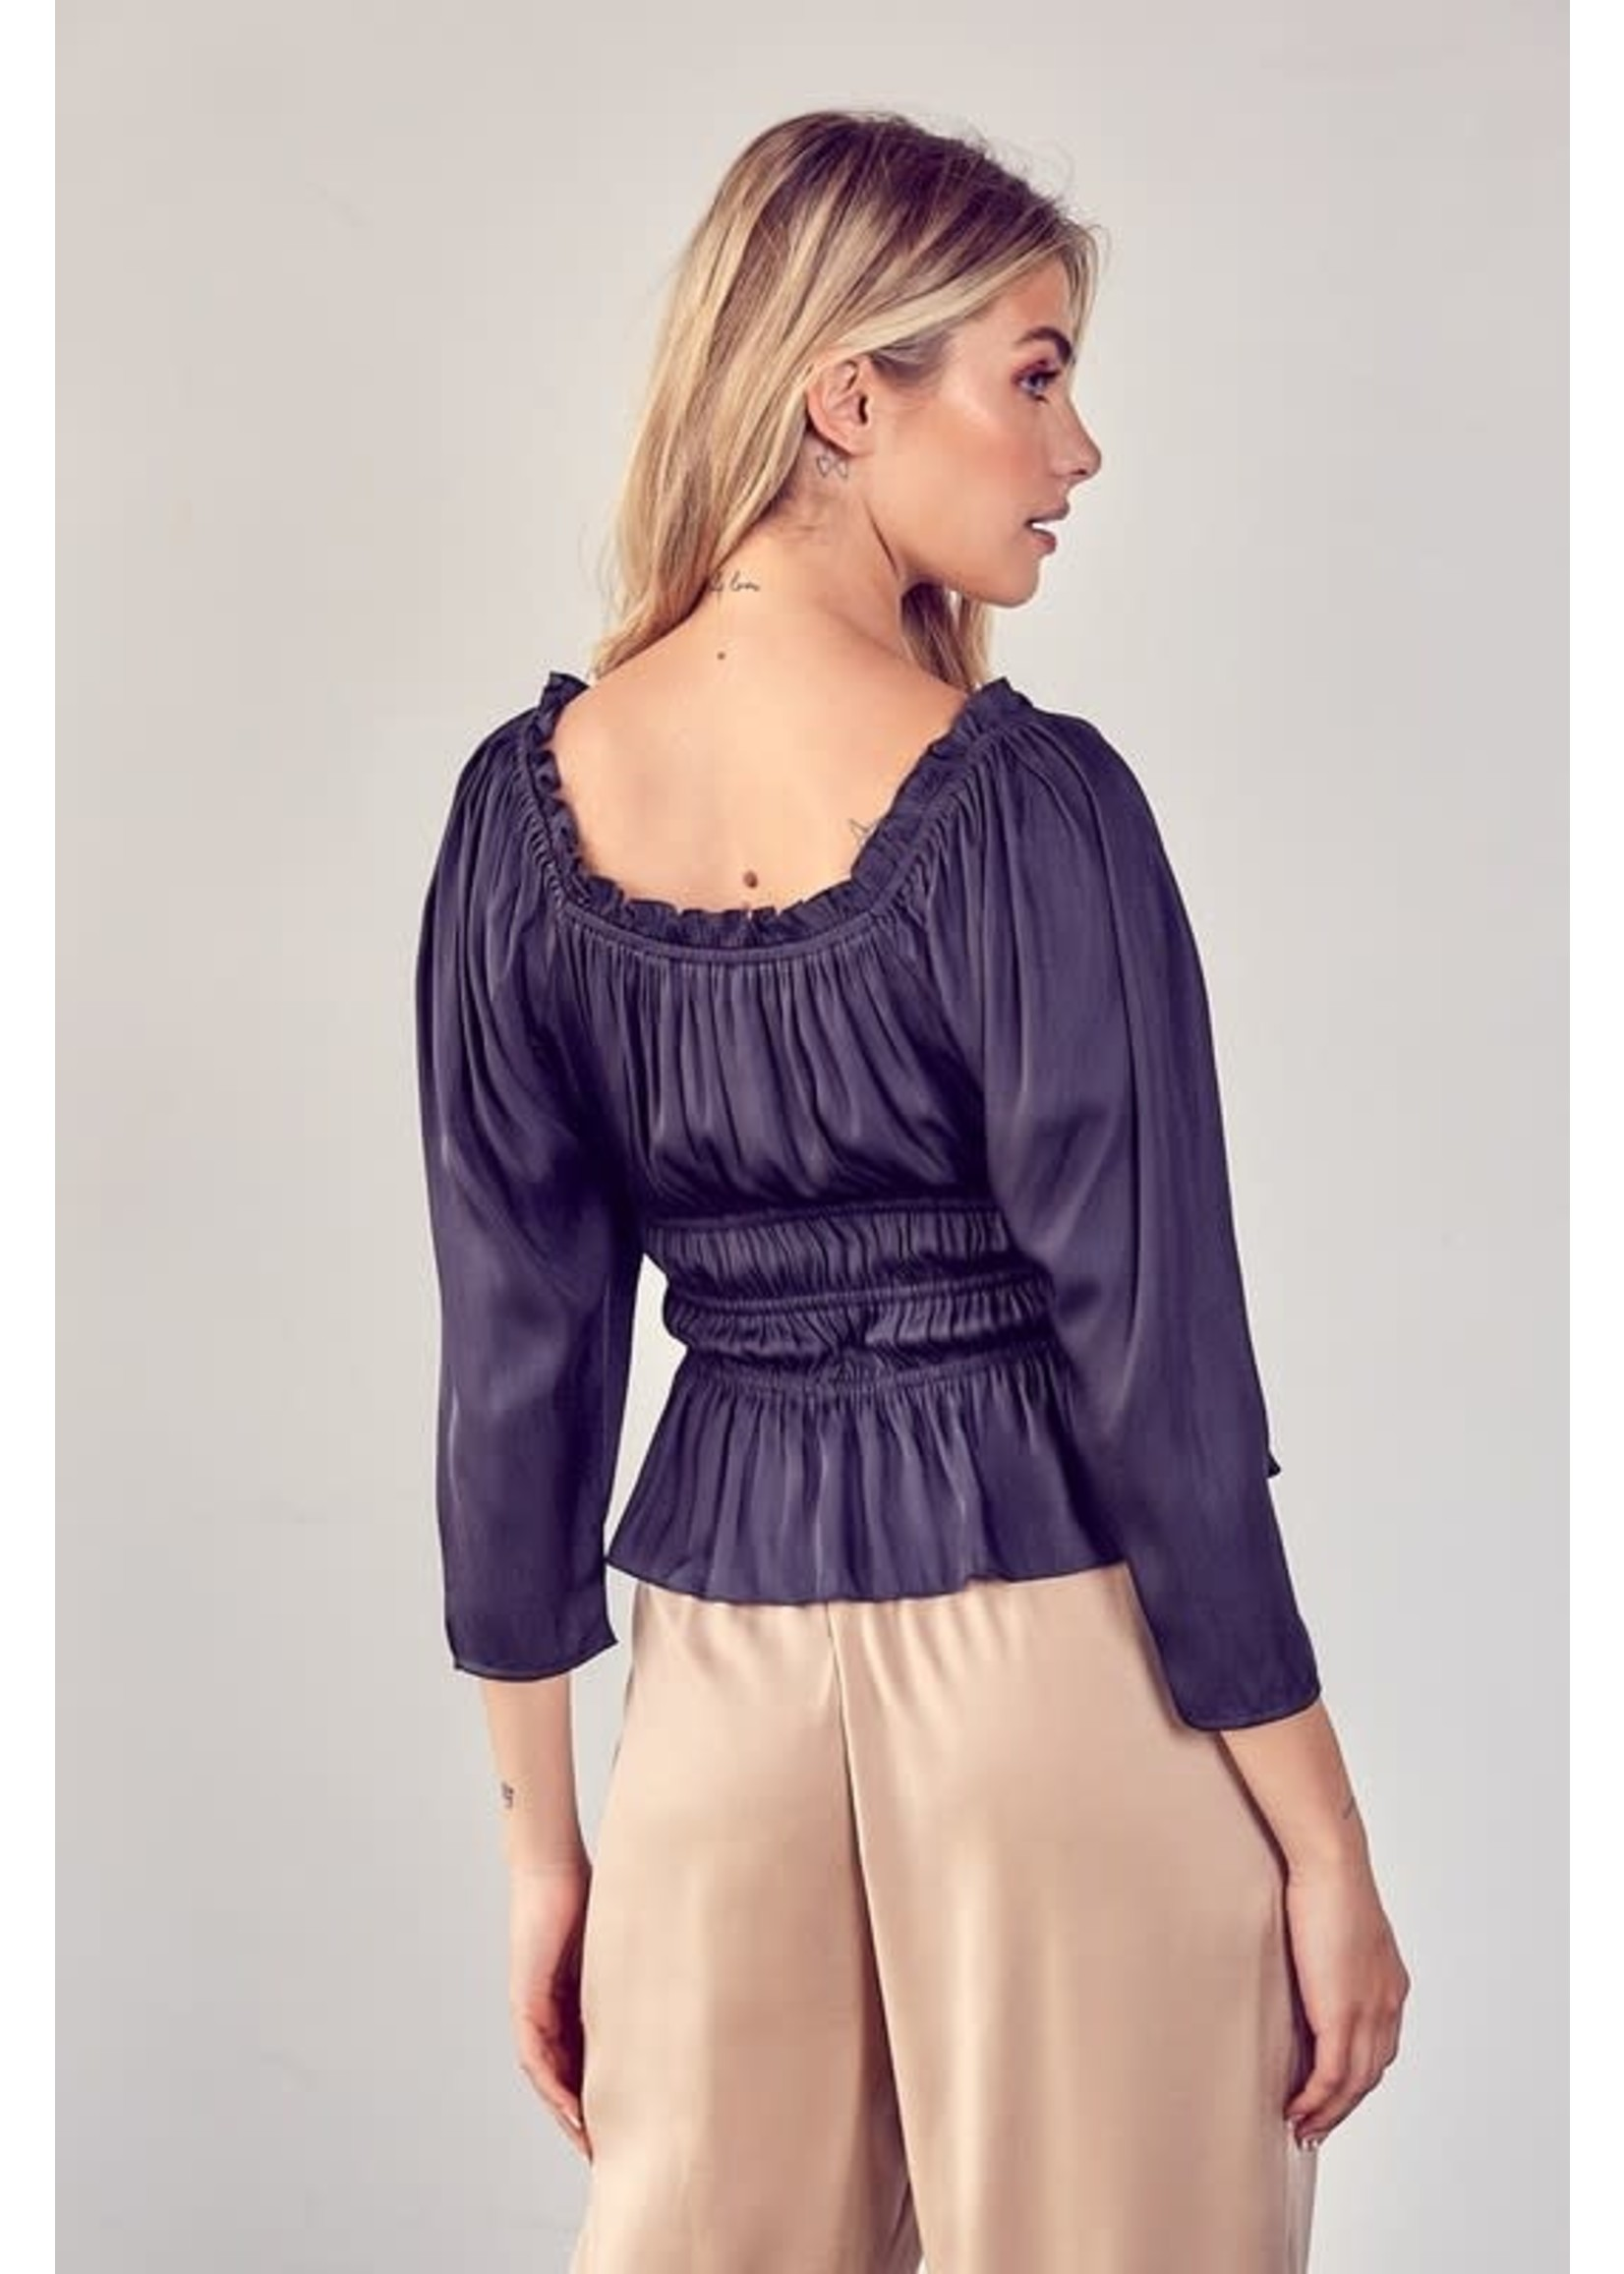 DO + BE Square Neck Ruched Top - Y19235